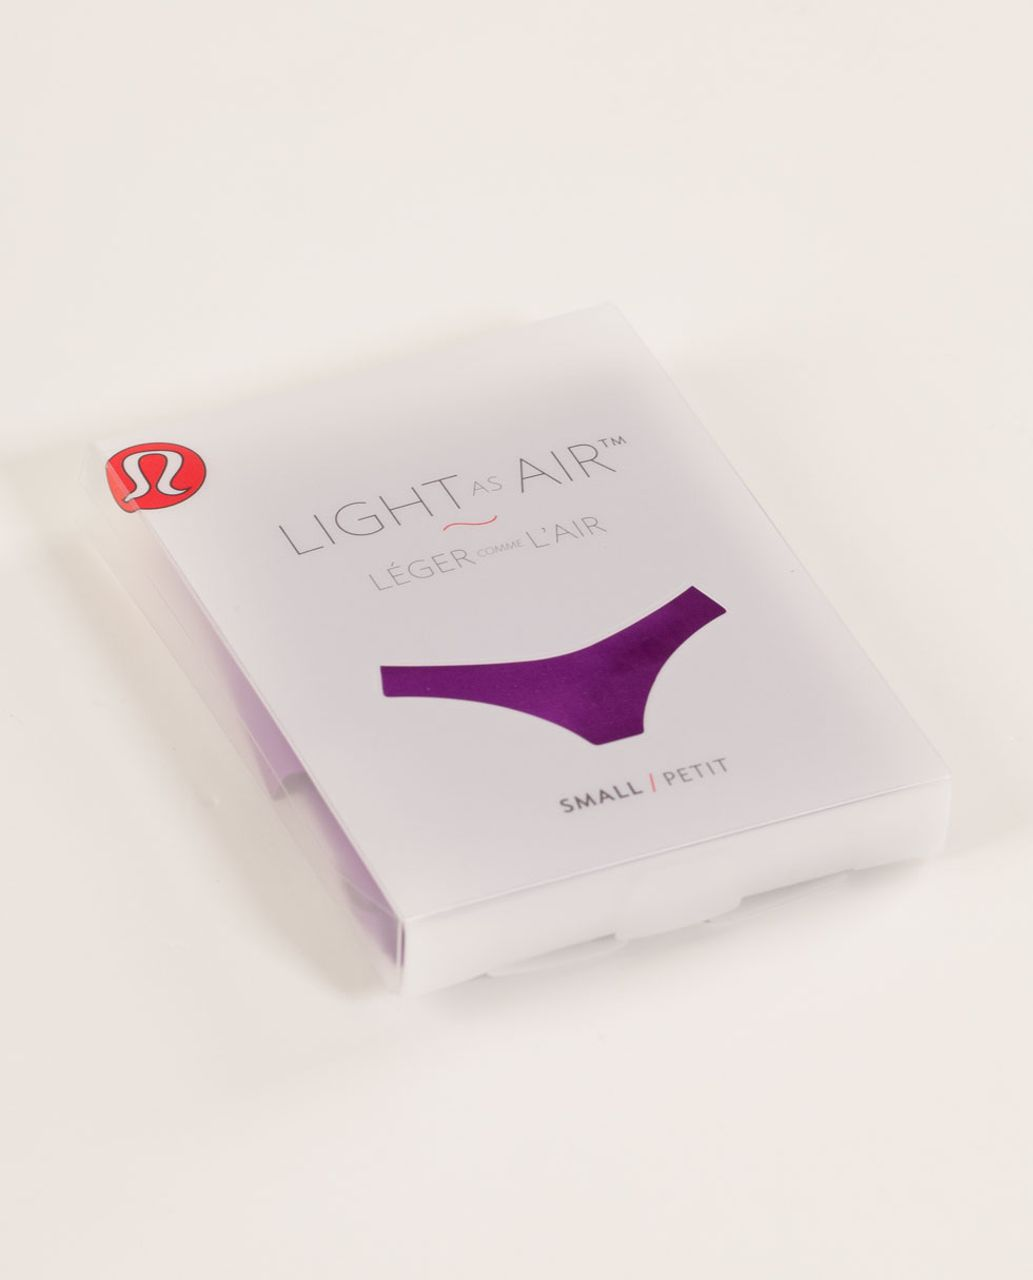 Lululemon Light As Air Thong - Tender Violet